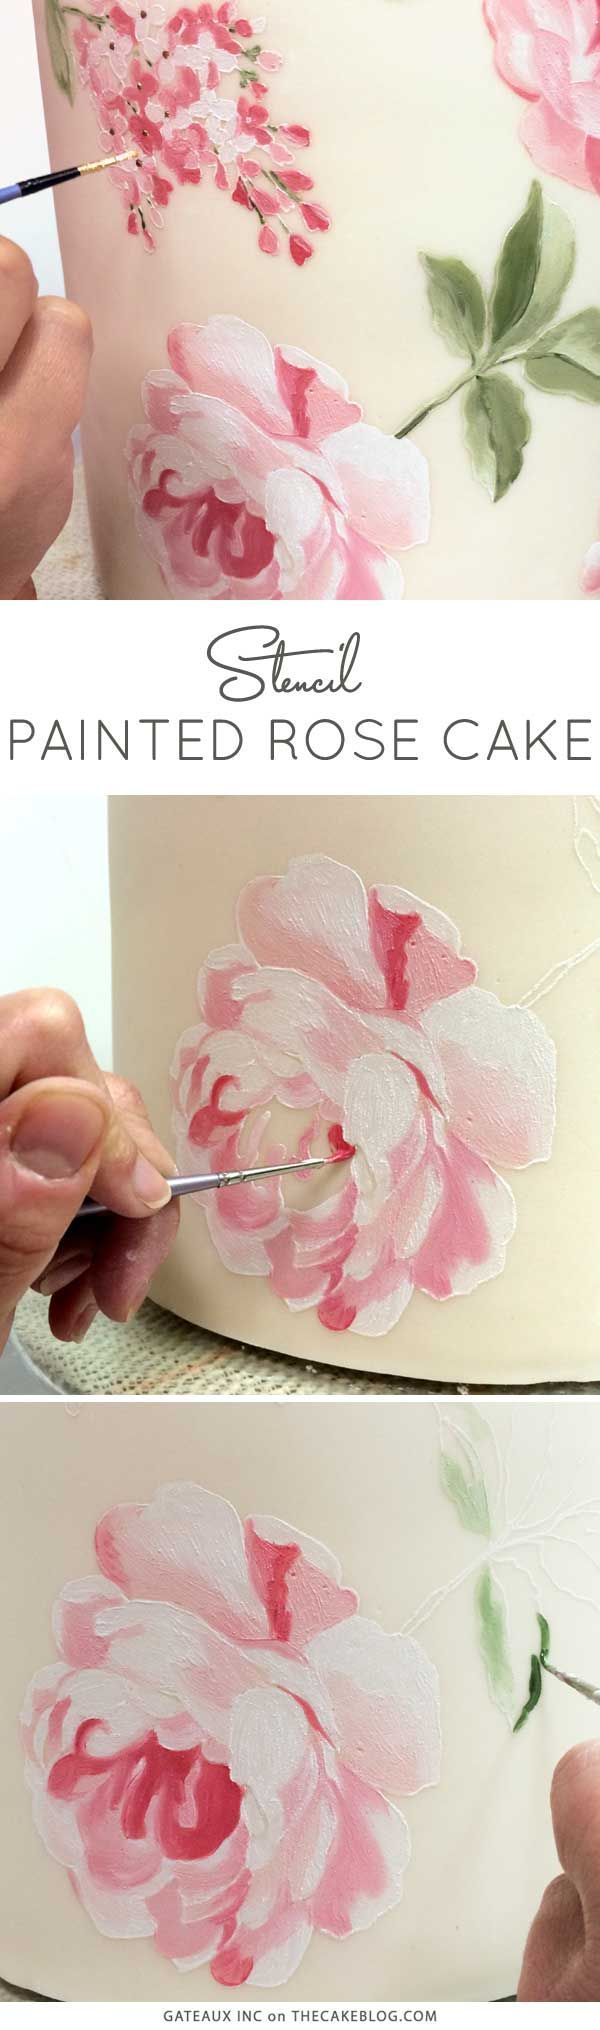 How to stencil-paint a cake | Learn how from Gateaux Inc on TheCakeBlog.com...Nice!